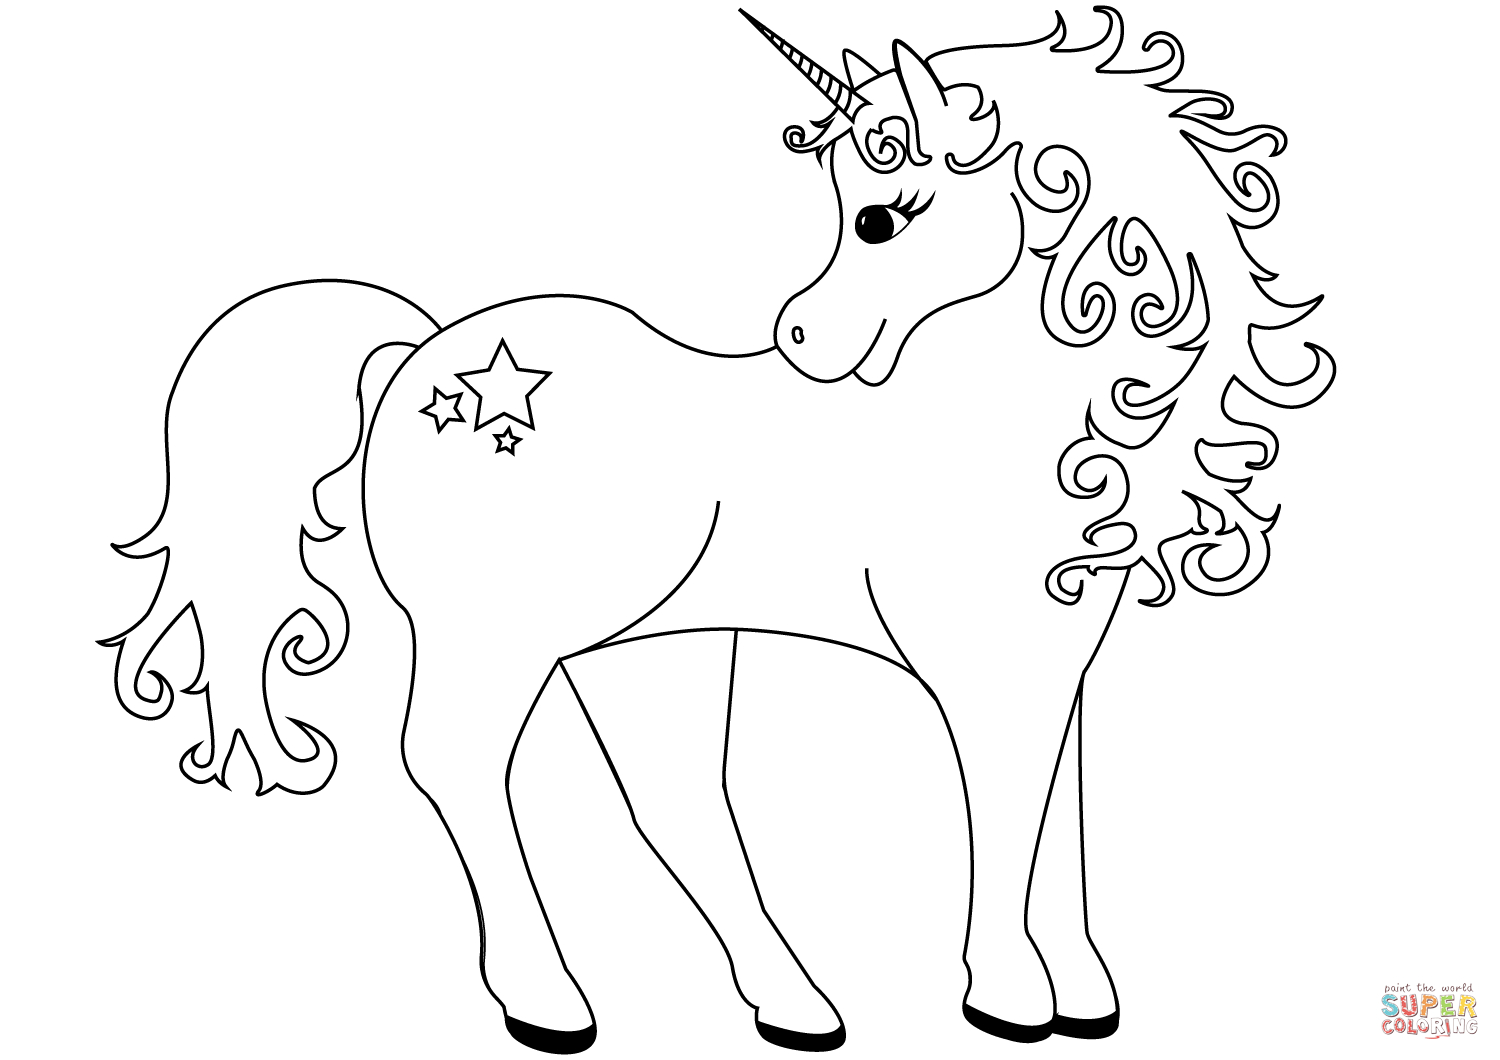 Lovely Unicorn Coloring Page | Free Printable Coloring Pages - Free Printable Unicorn Coloring Pages